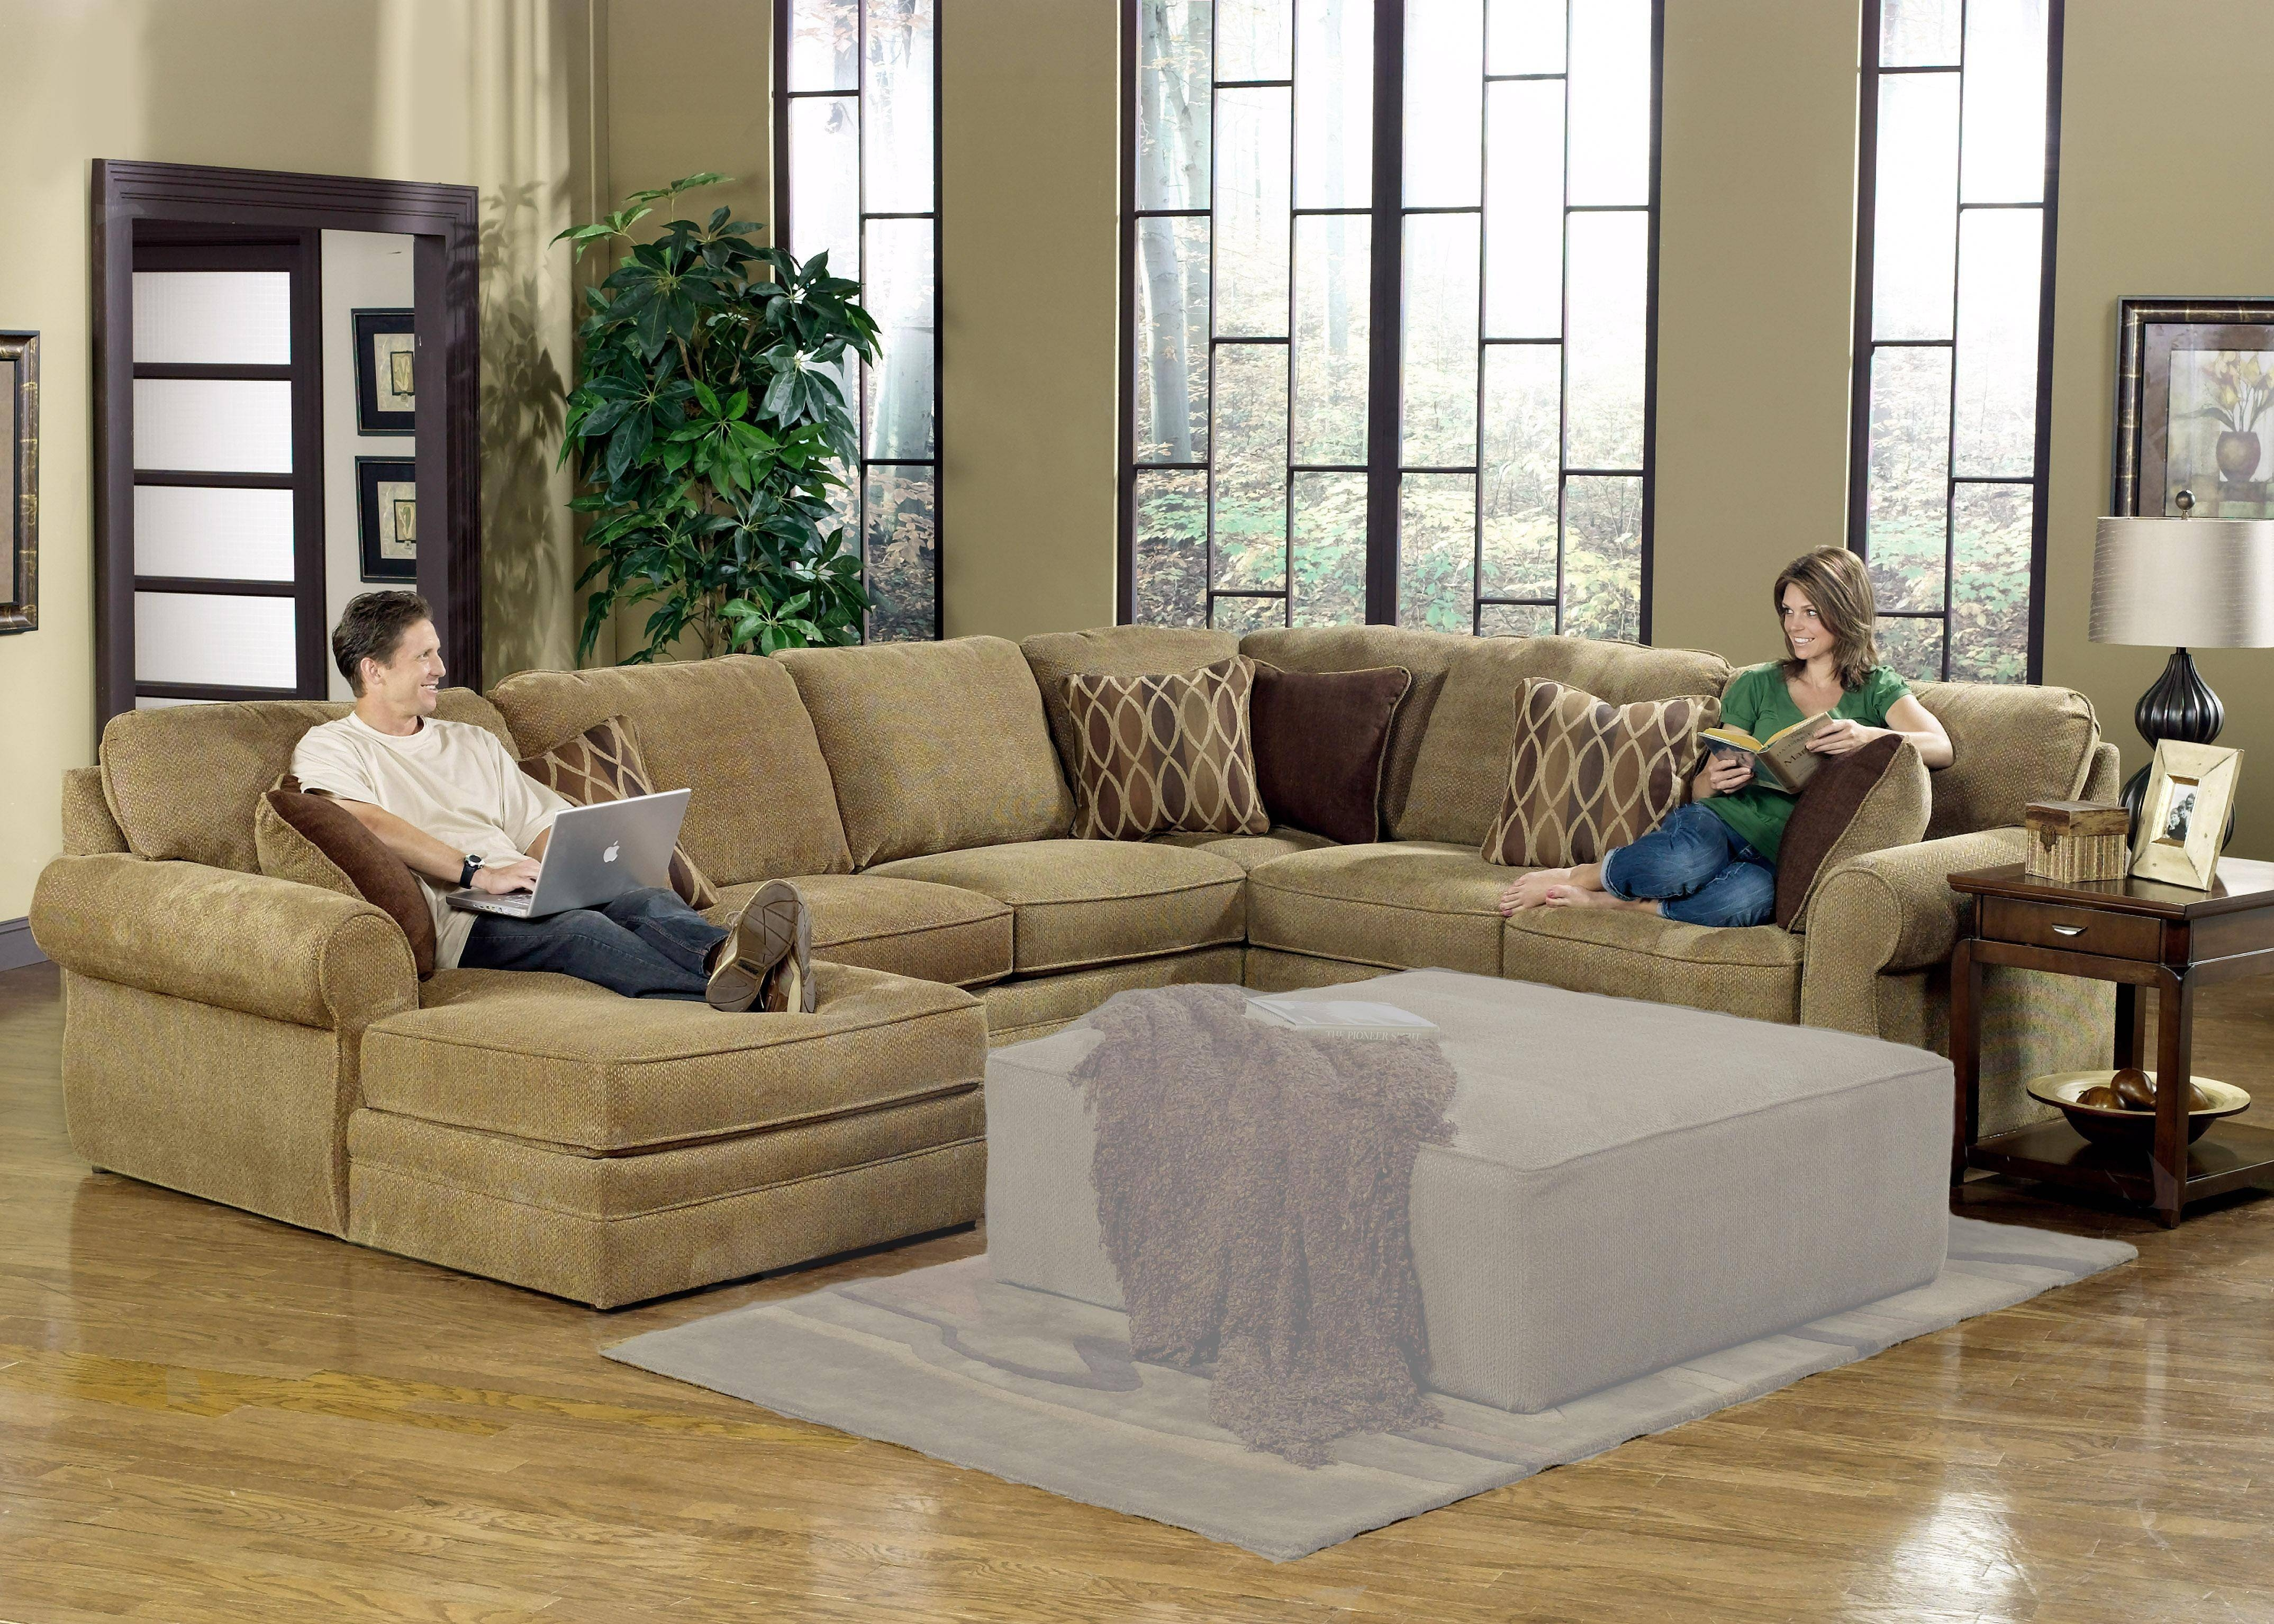 Stunning Huge Sectional Sofas 64 For Your Sleeper Sofa San Diego With  Sectional Sofa San Diego